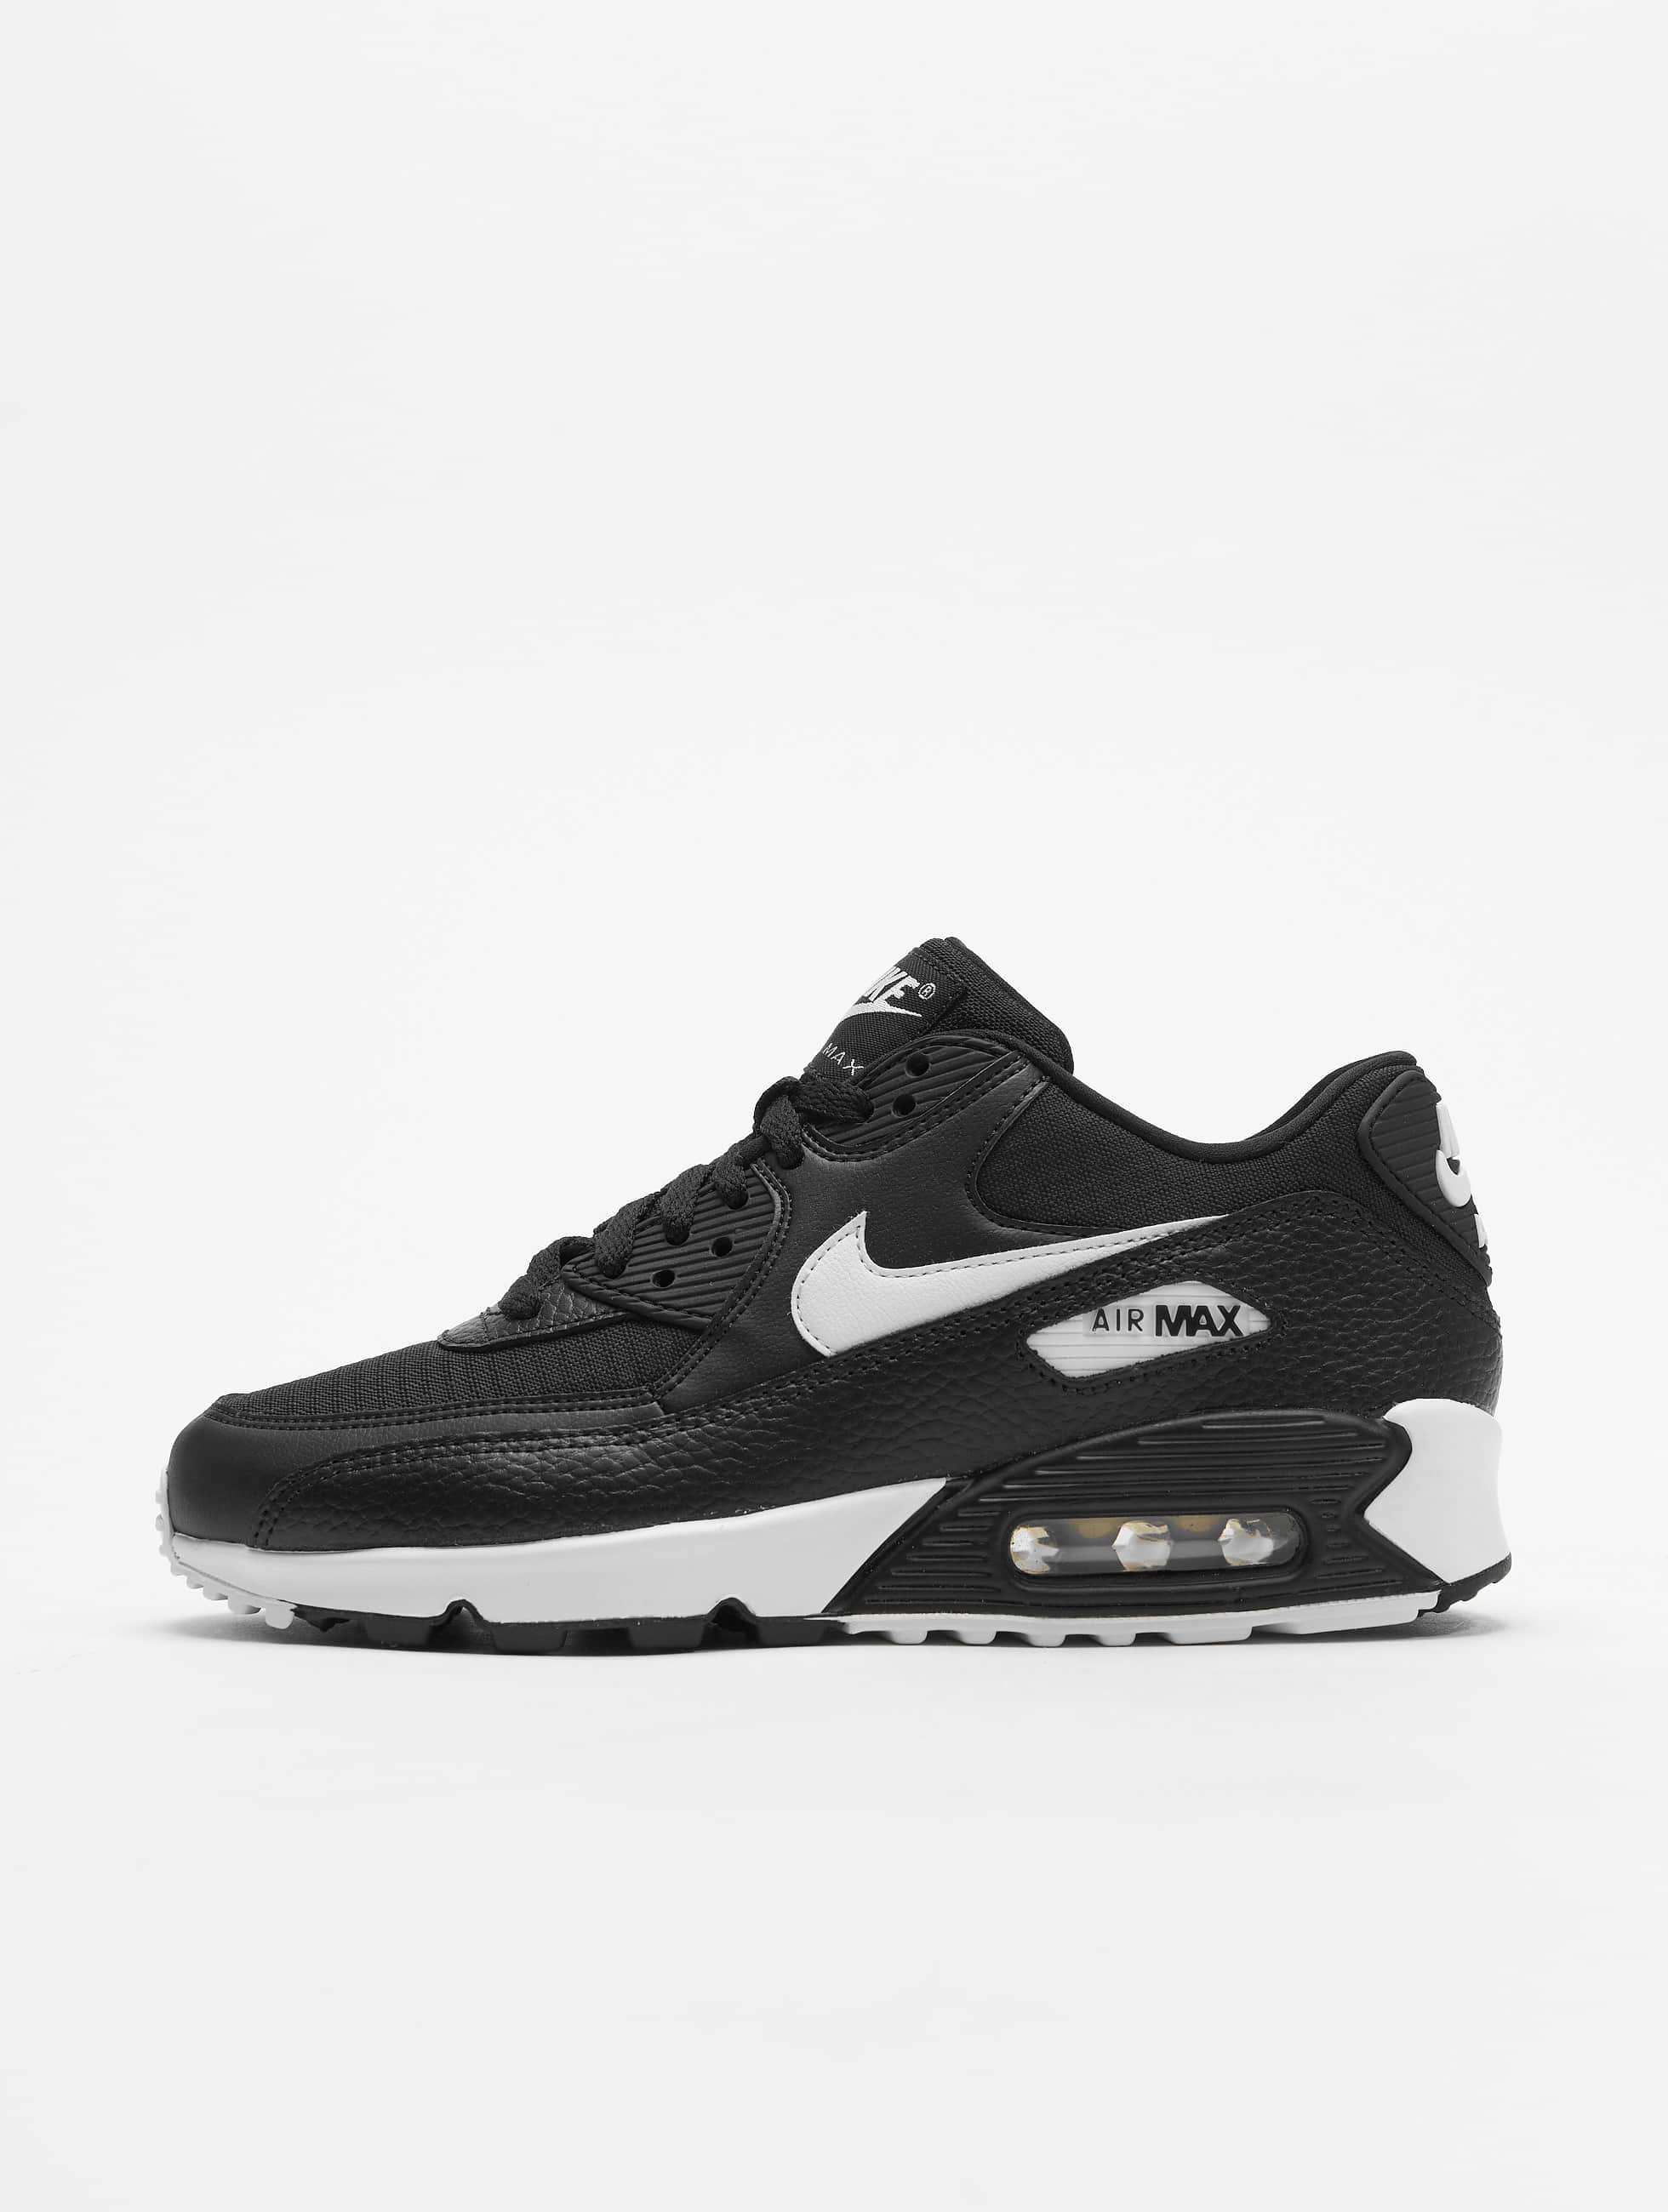 Nike Air Max Light Produkte online Shop & Outlet | LadenZeile